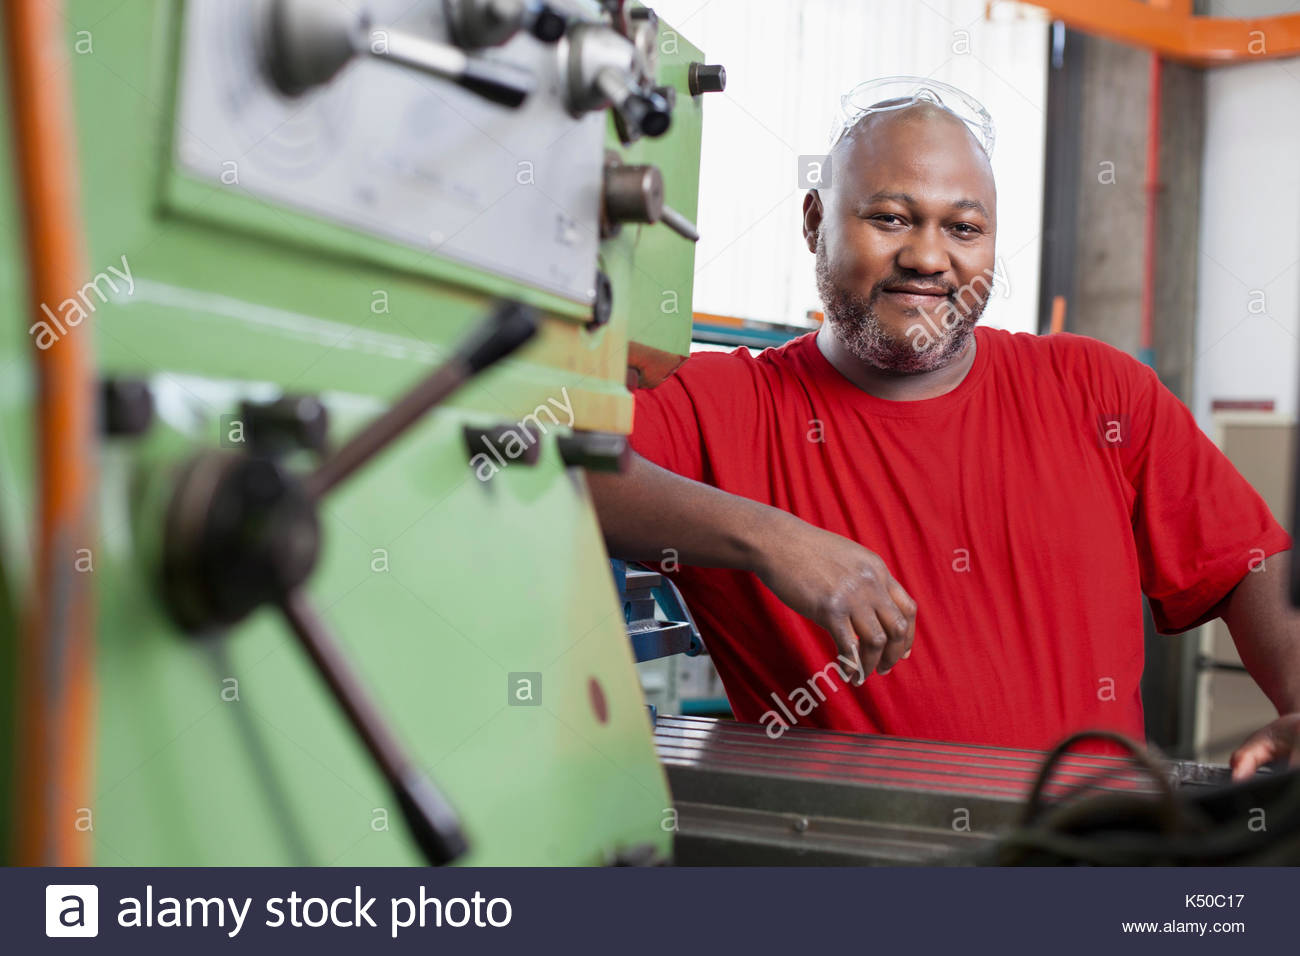 African man operating a machine at a warehouse - Stock Image